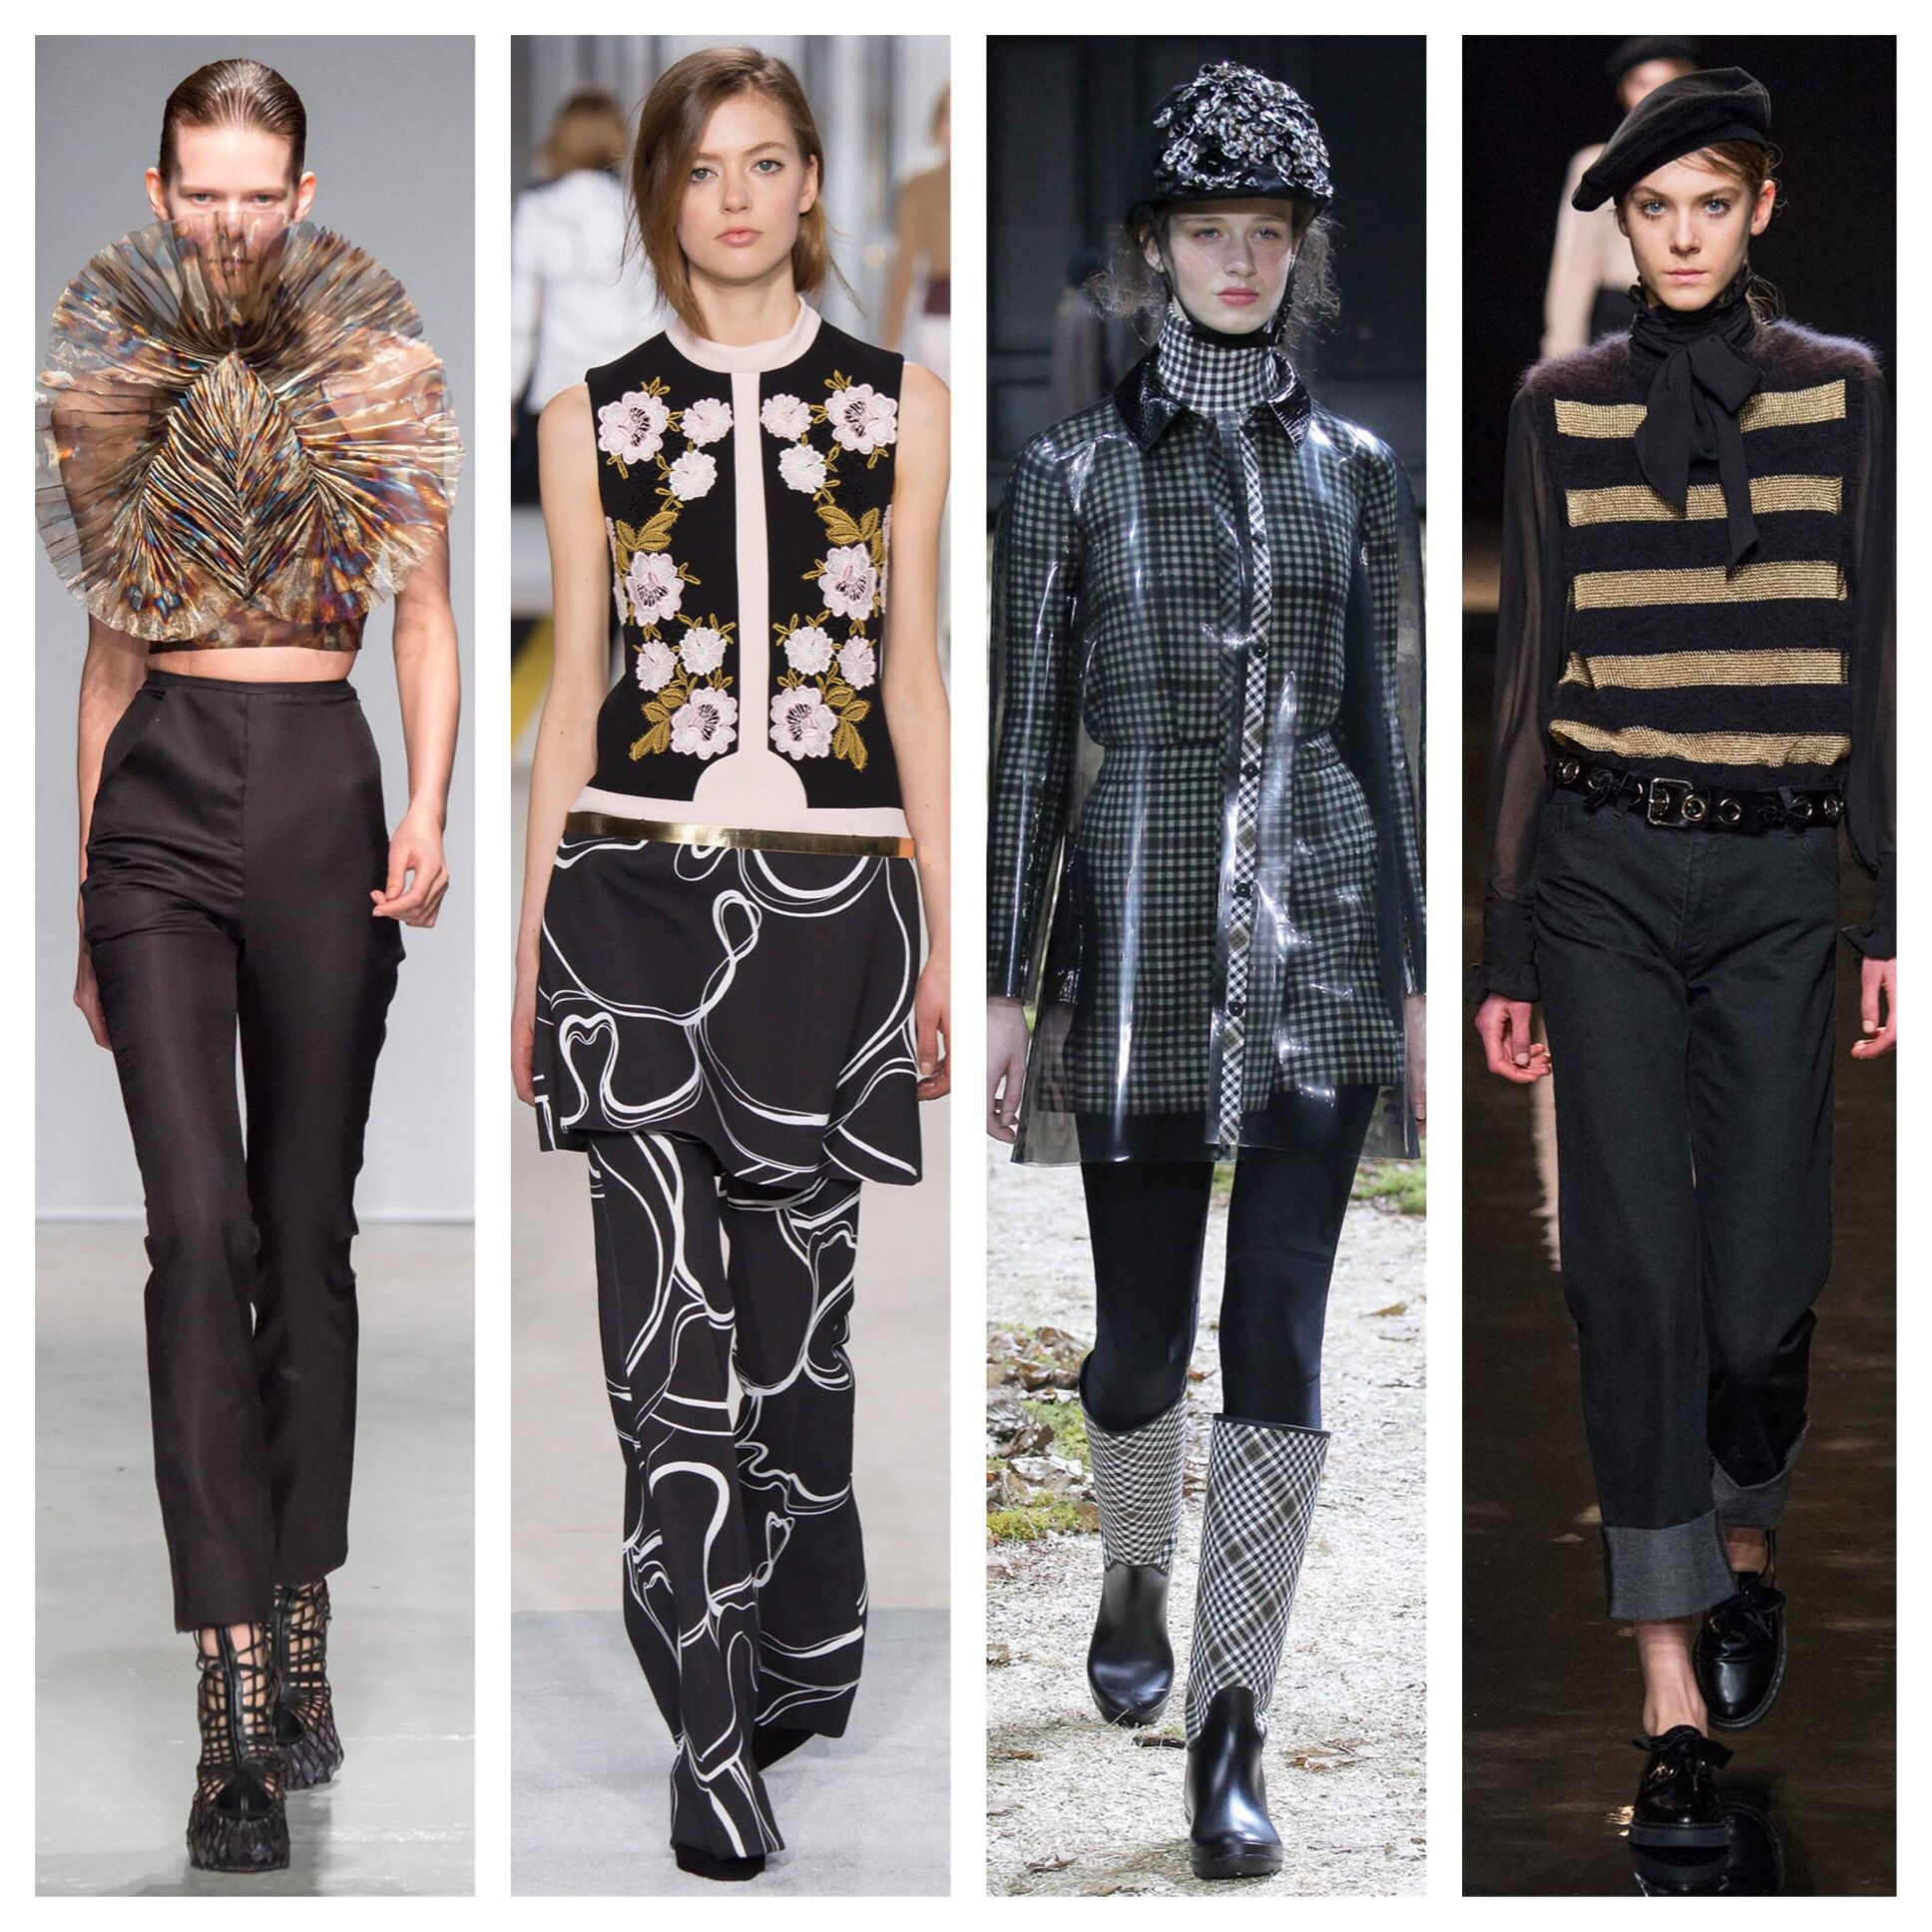 Paris Fashion Week. FW 2015. Iris Van Harpen, Giambattista Valli, Moncler Gamme Rouge, Paul & Joe. #stylecom